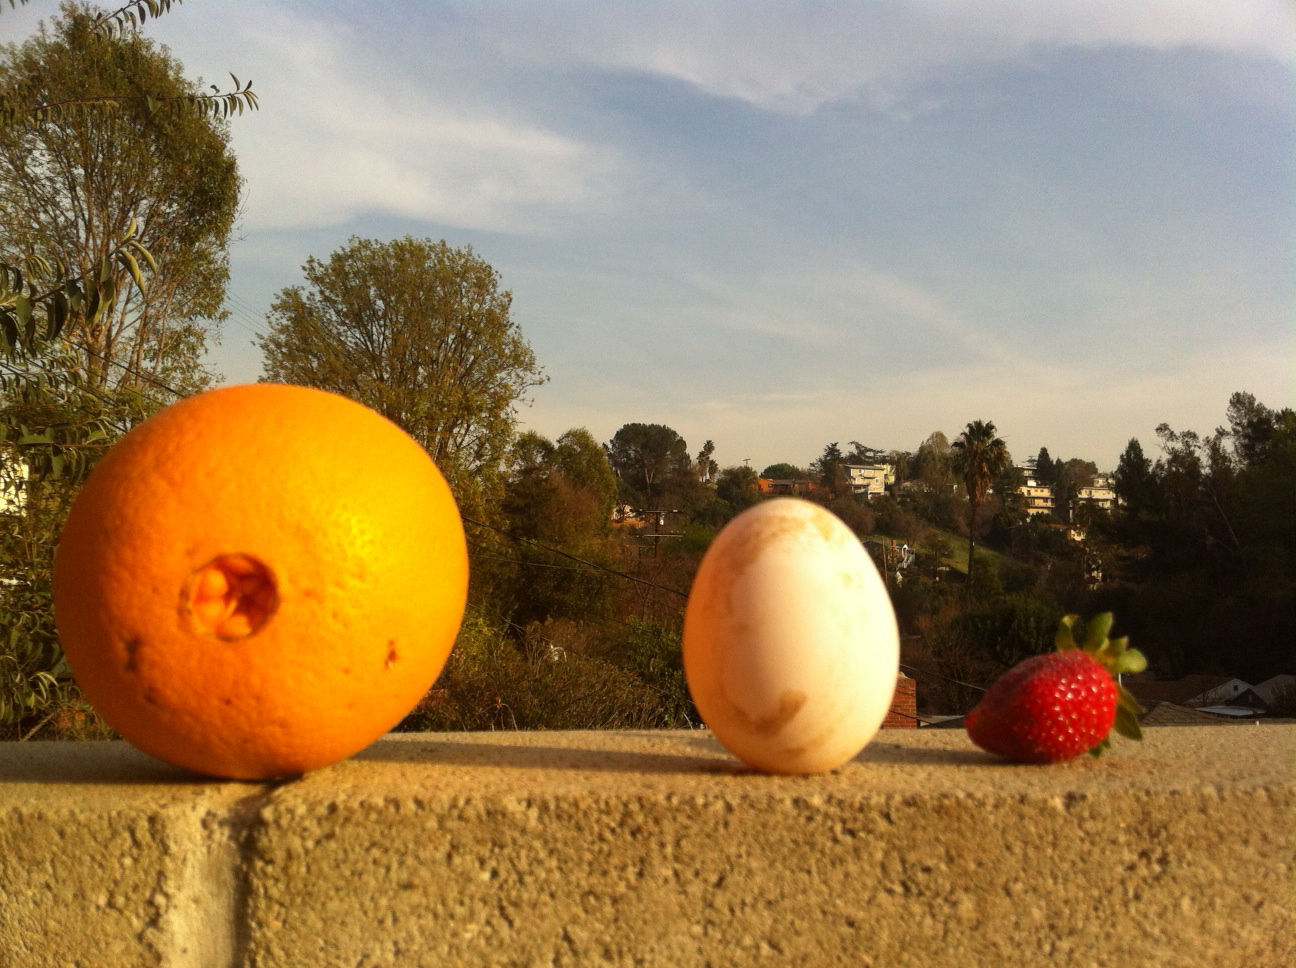 Orange, egg and strawberry from the microfarm